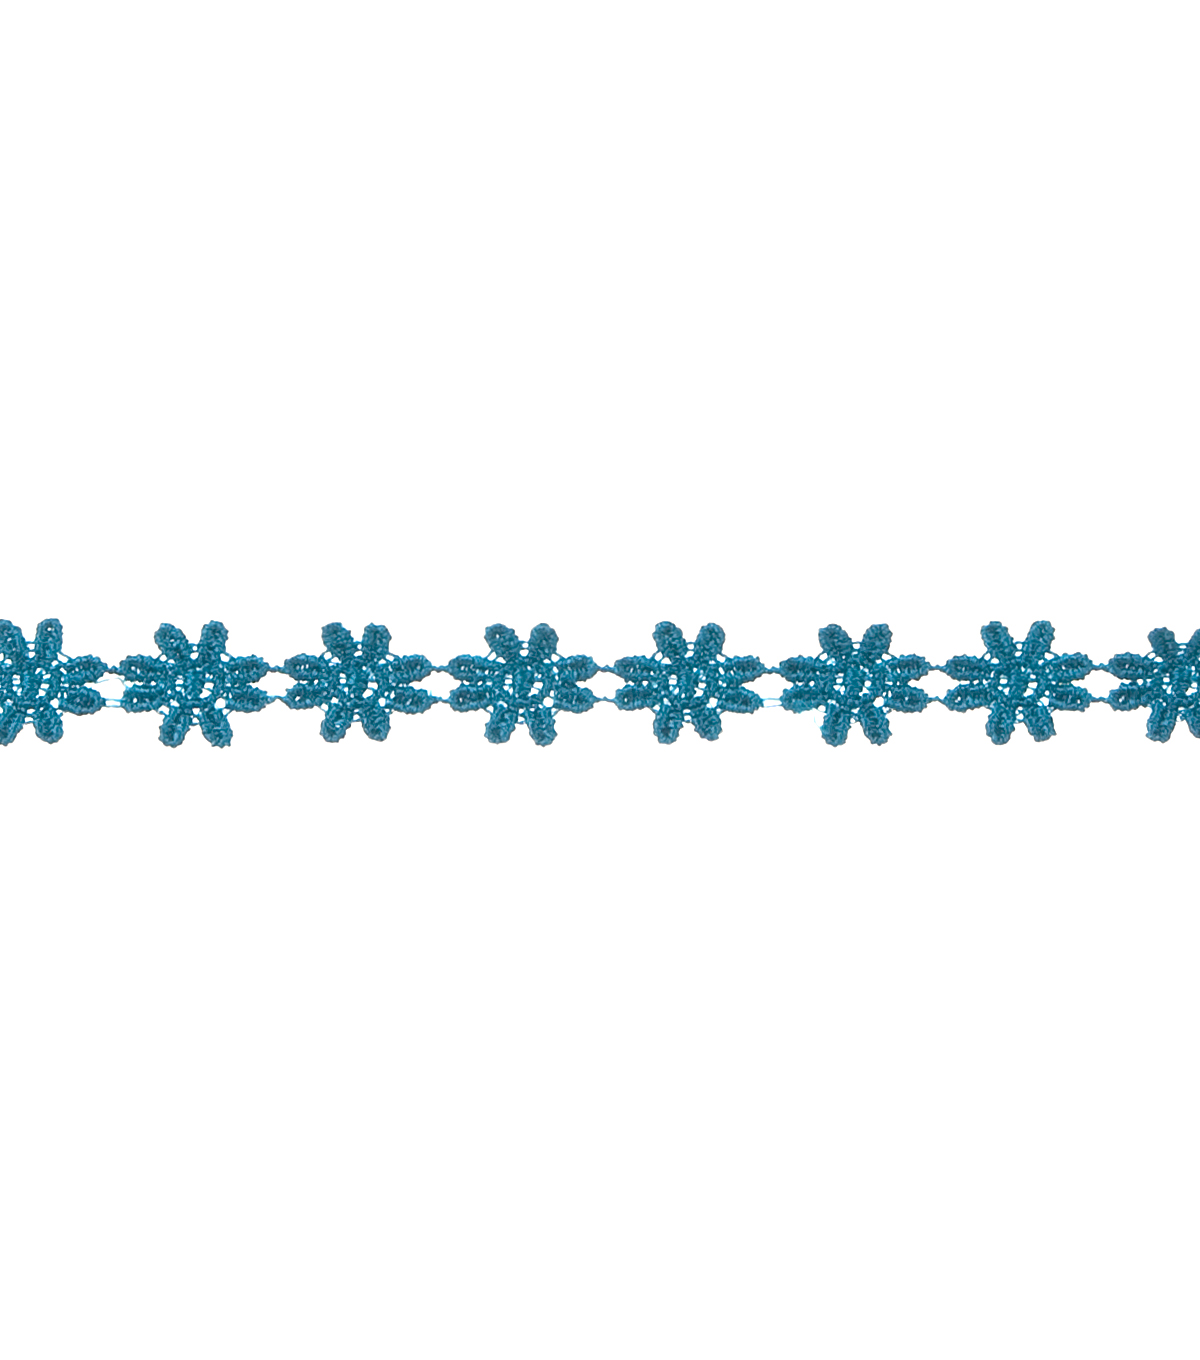 Daisy Chain Turquoise 2 Yds Apparel Trim